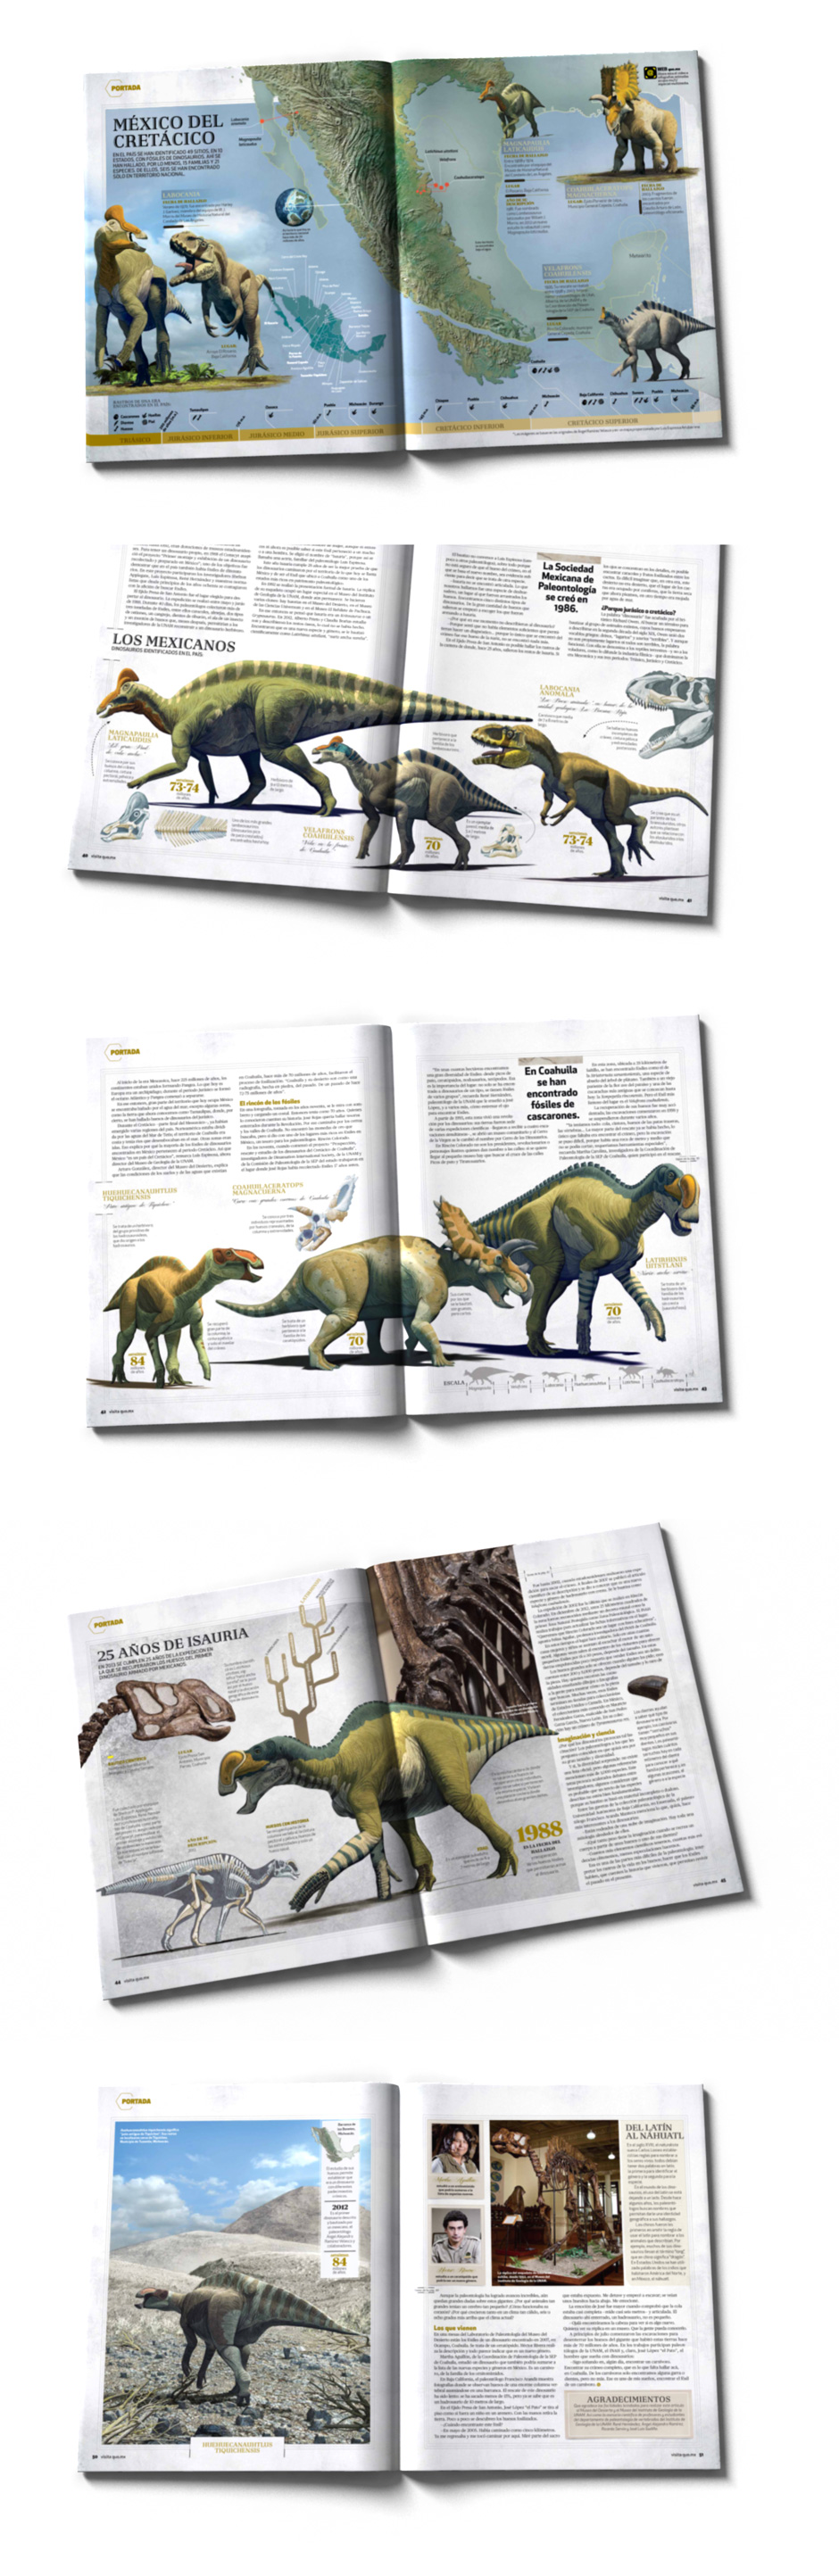 Mexican Dinosaurs, Quo Magazine August 2013. Interior pages of the article. Art by Román García Mora.